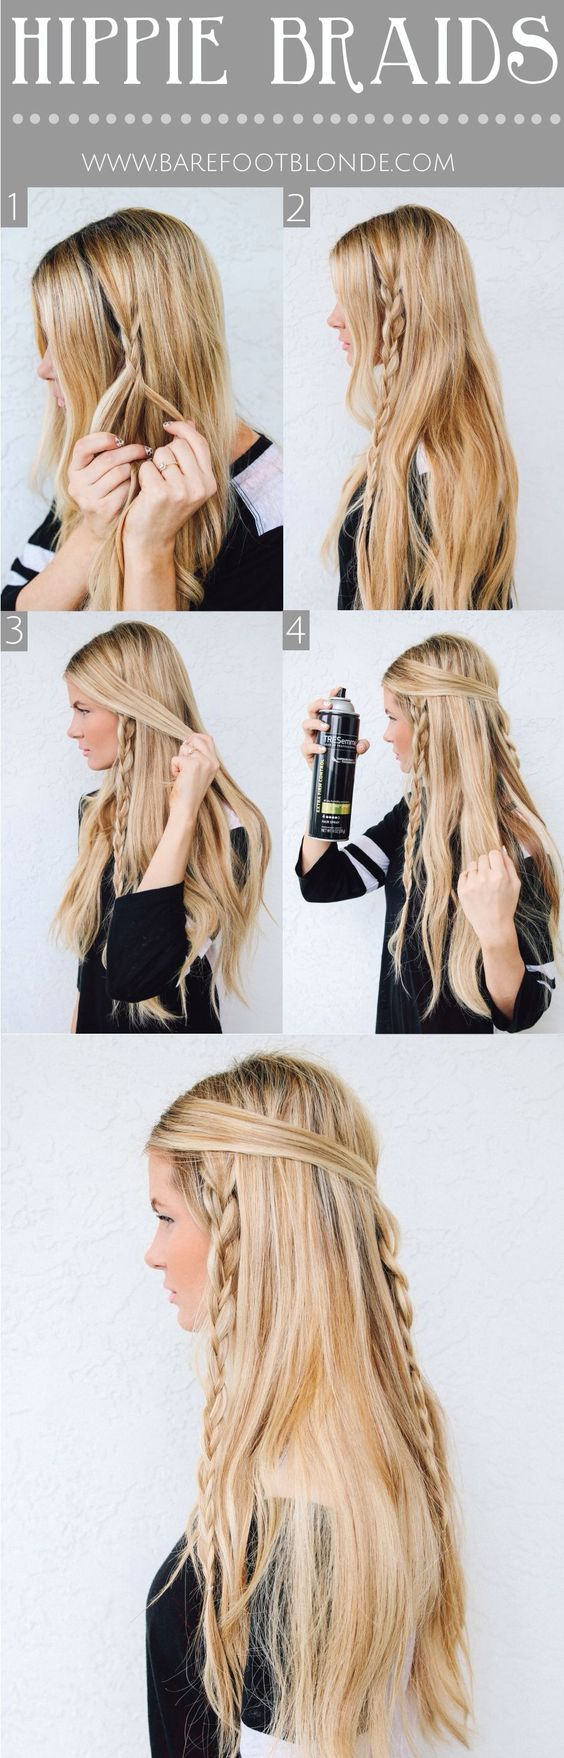 I love to do this to my hair. It looks gd with brown hair too